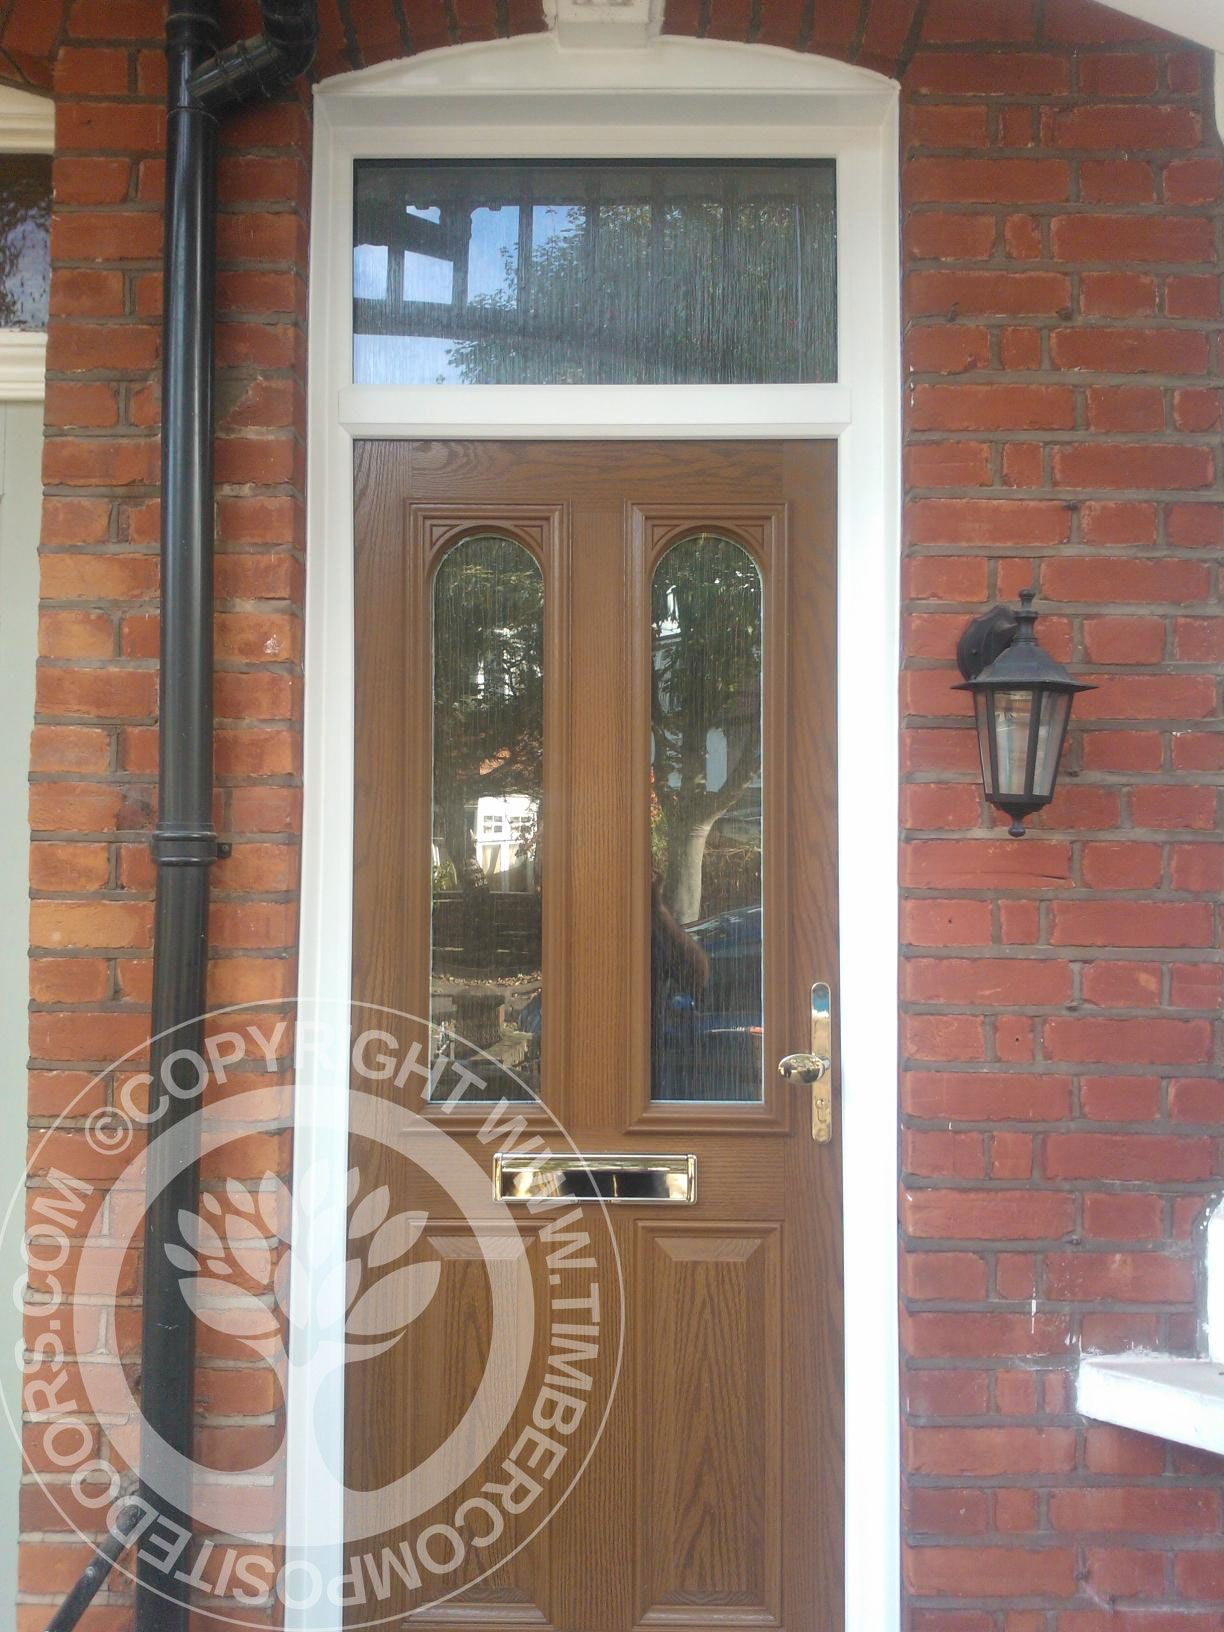 As The UKu0027s Largest Online Supplier Of